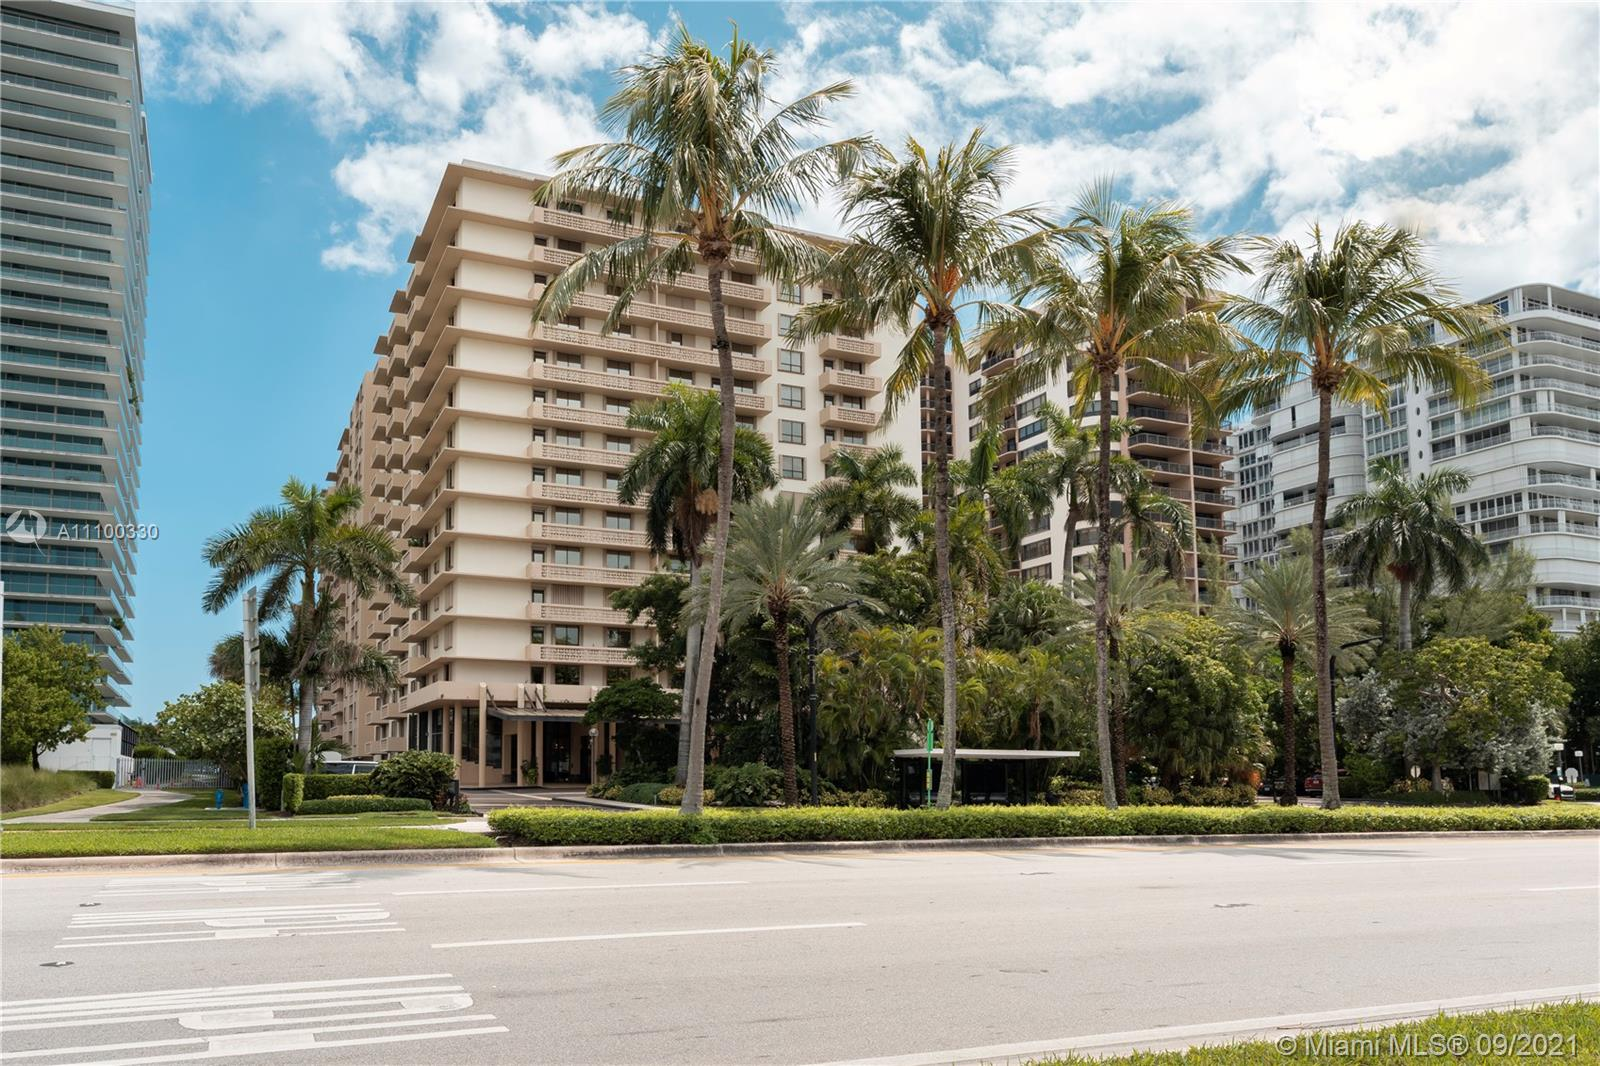 THE PLAZA OF BAL HARBOUR Condo,For Rent,THE PLAZA OF BAL HARBOUR Brickell,realty,broker,condos near me